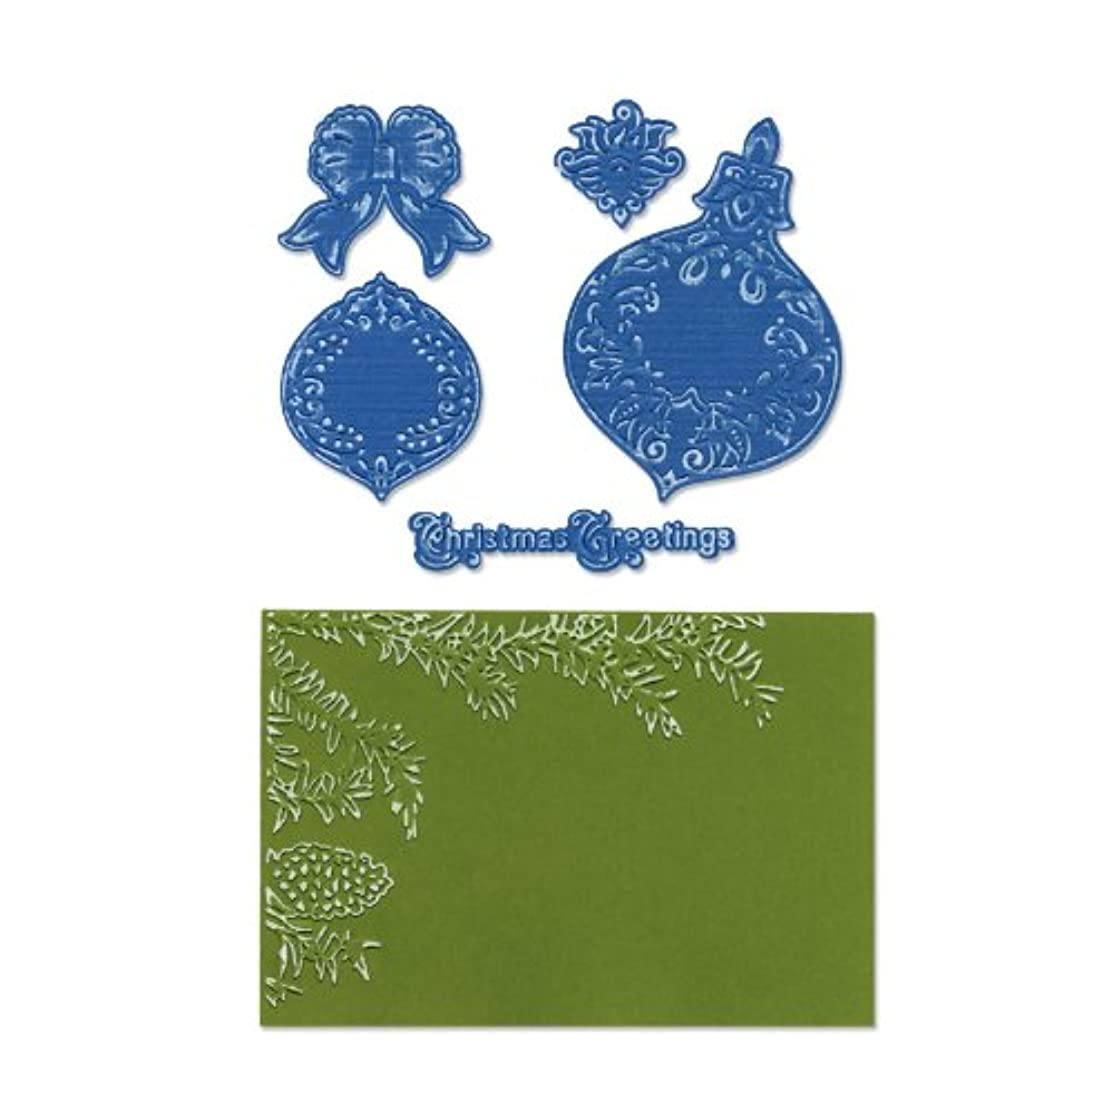 Sizzix 657975 Framelits Die Set with Textured Impressions, Pinecone & Ornament Set by Rachael Bright, Pack of 5, Multicolor